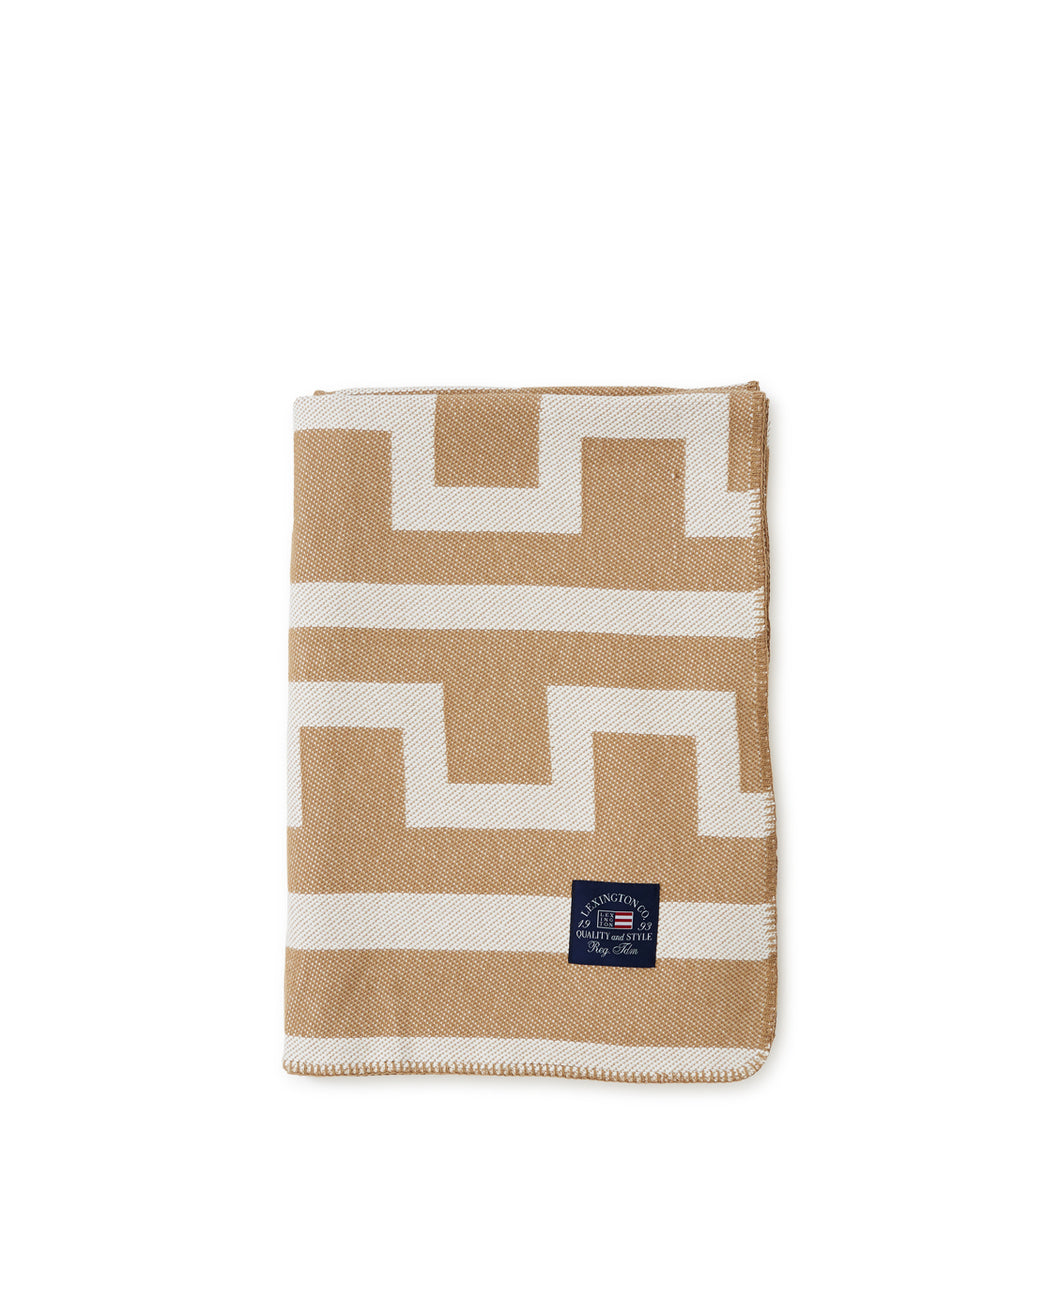 Graphic Recycled Cotton Blanket